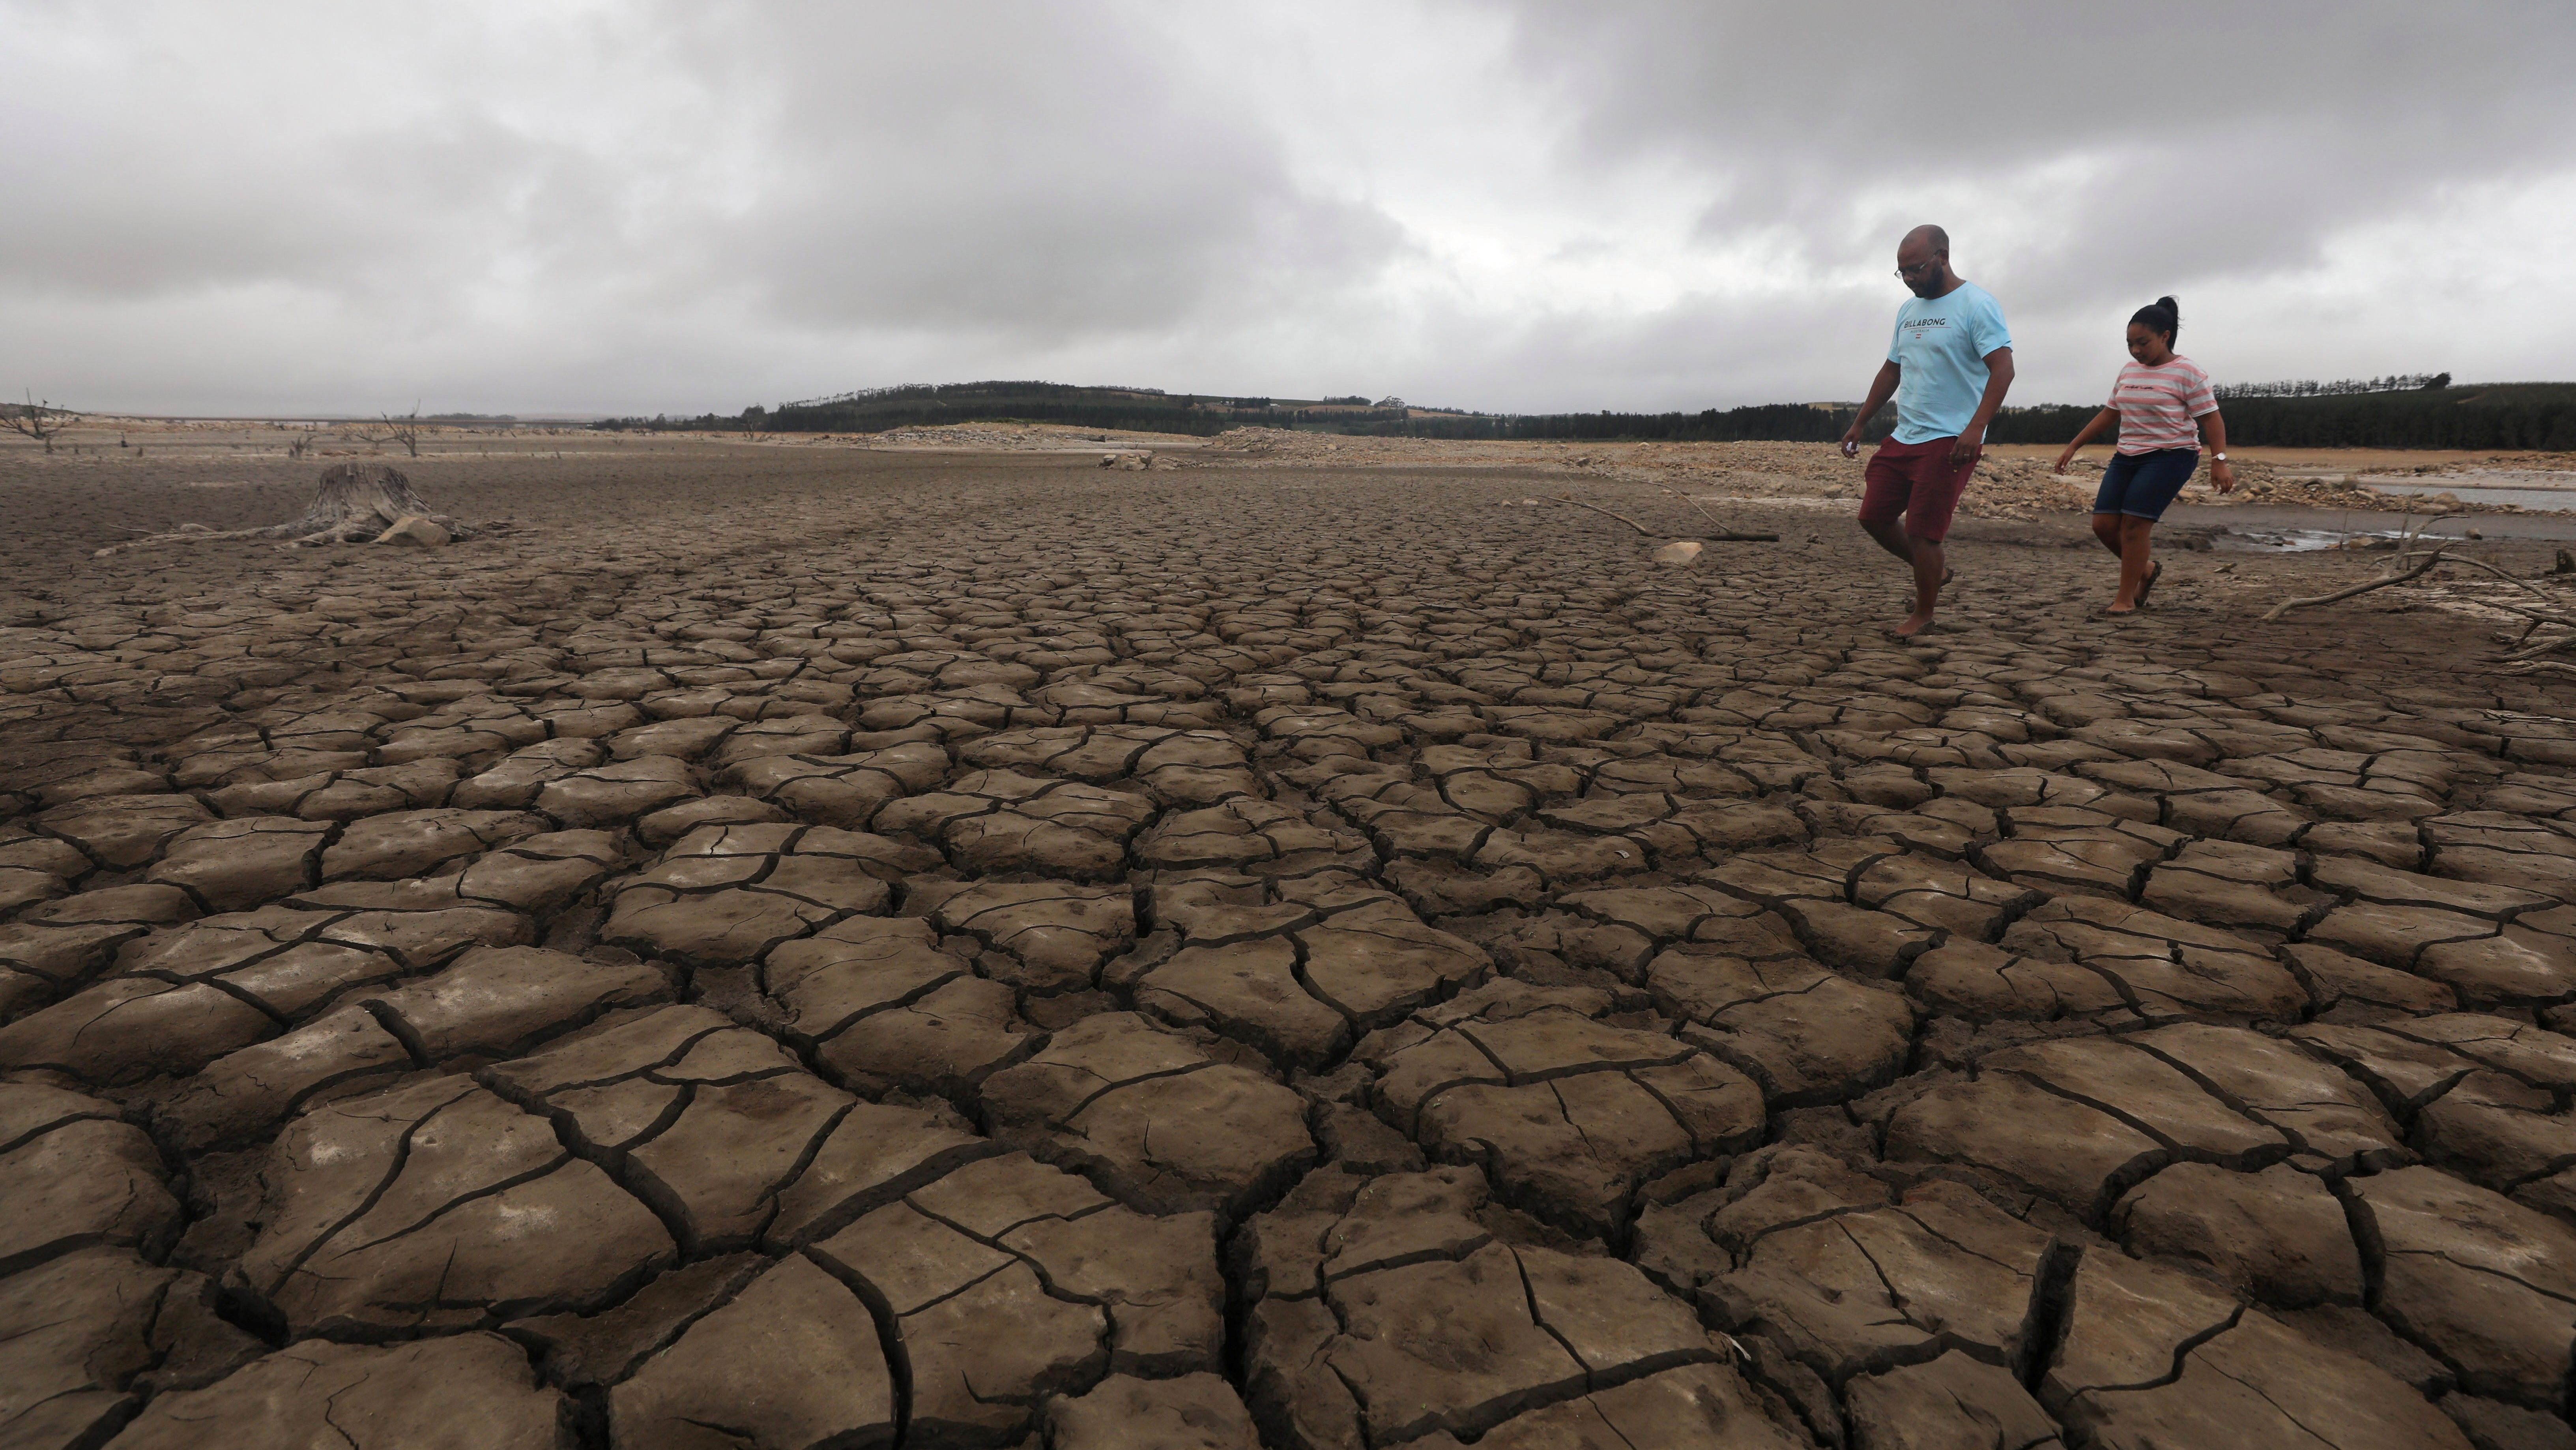 A family negotiates their way through caked mud around a dried up section of the Theewaterskloof dam near Cape Town